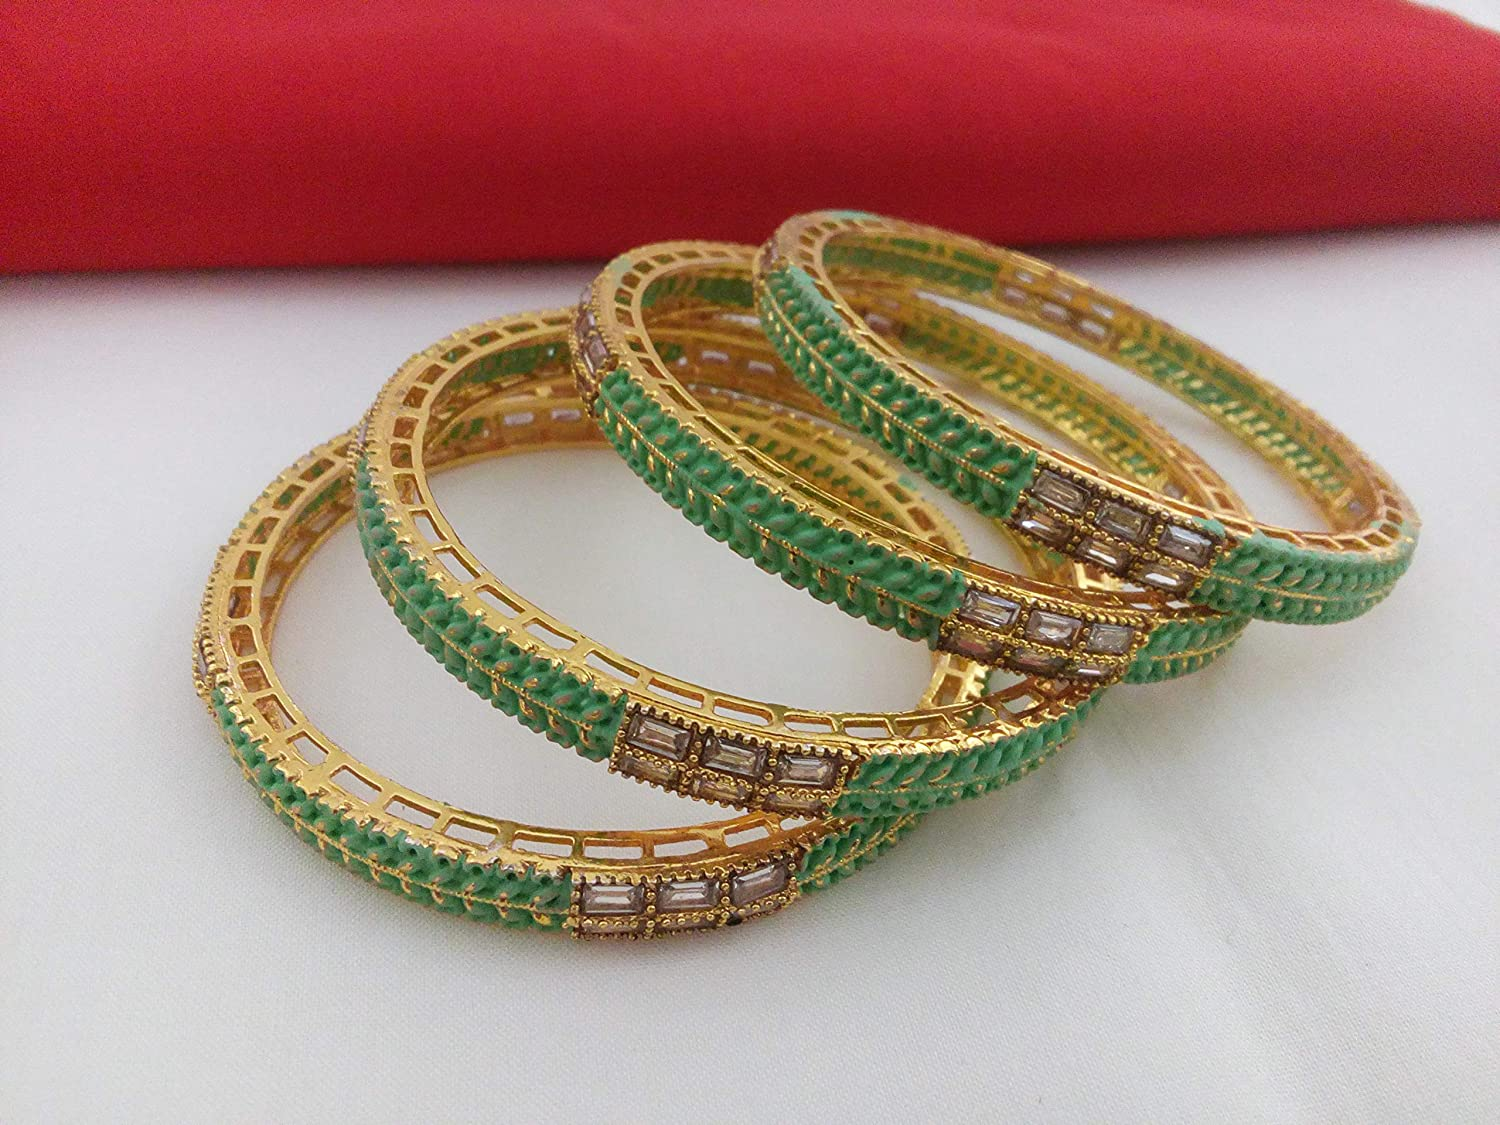 Tezshree (TJ) Indian Style Antique Golden & Green Bangle Set for Valentine Gift Ethnic Artificial Fashion Jewelry for Women & Girls (2.2)